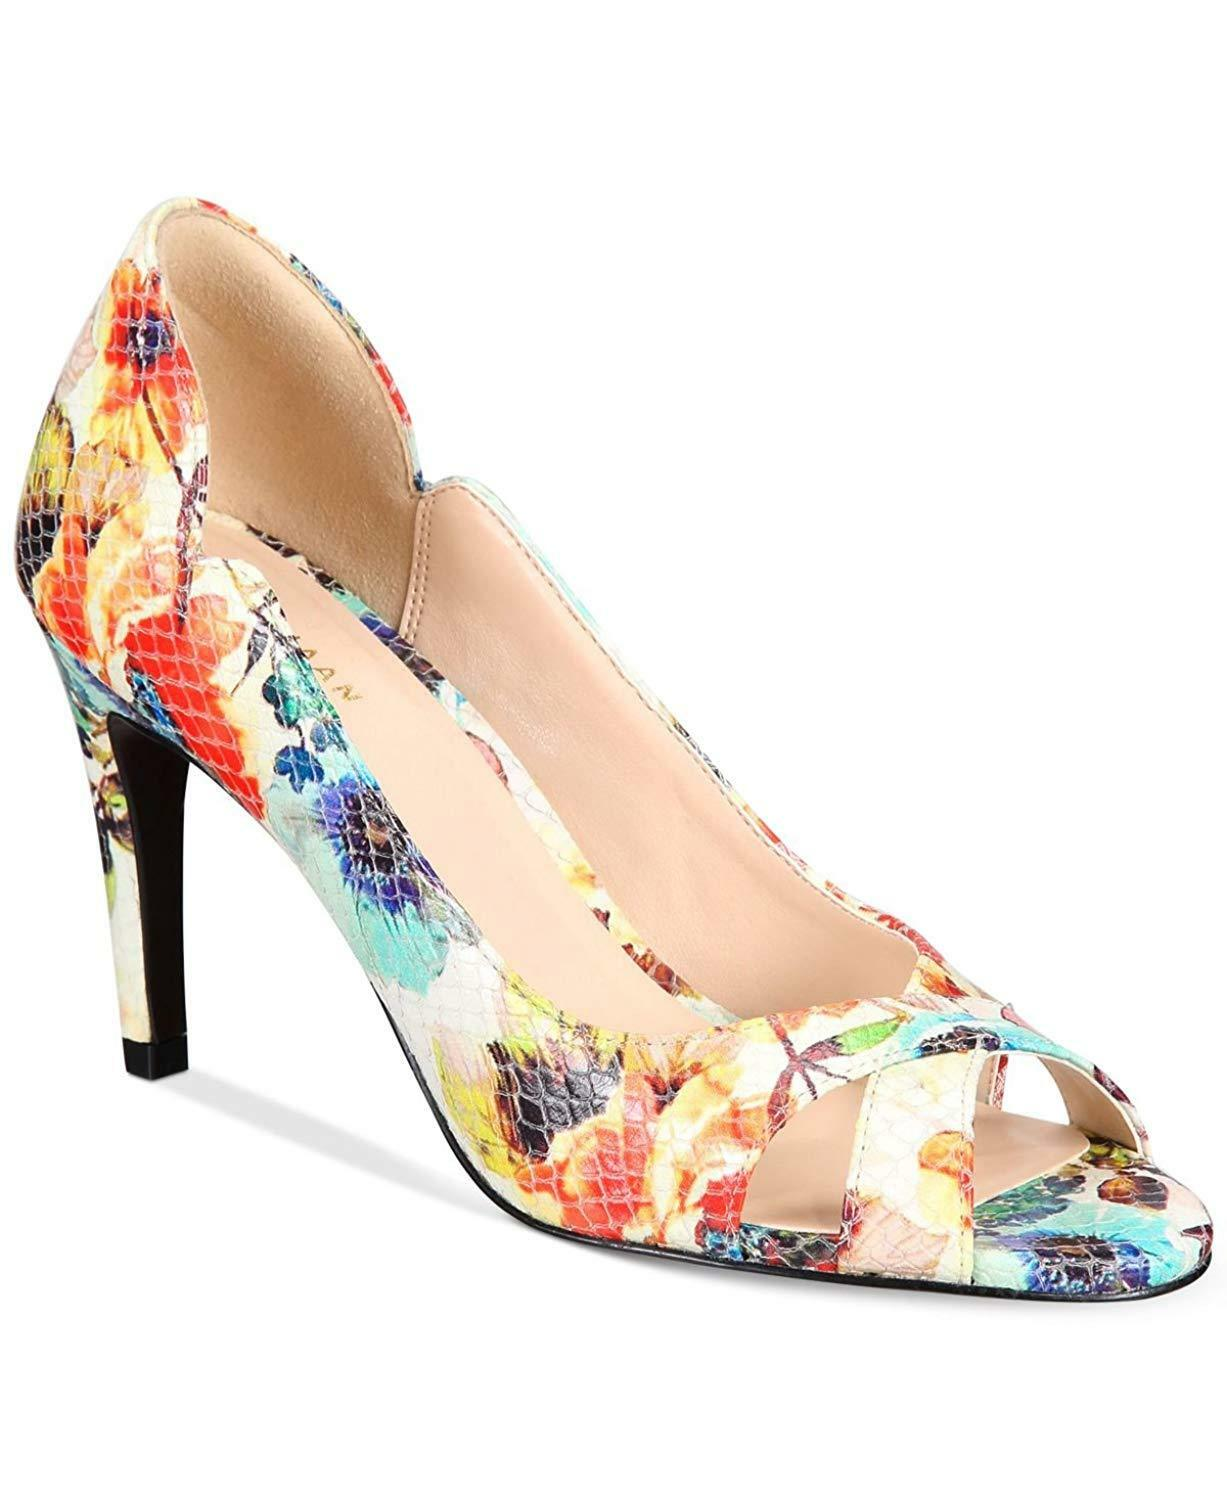 Cole Haan Womens Jacinda Peep Toe Heels shoes Floral 10 NEW IN BOX